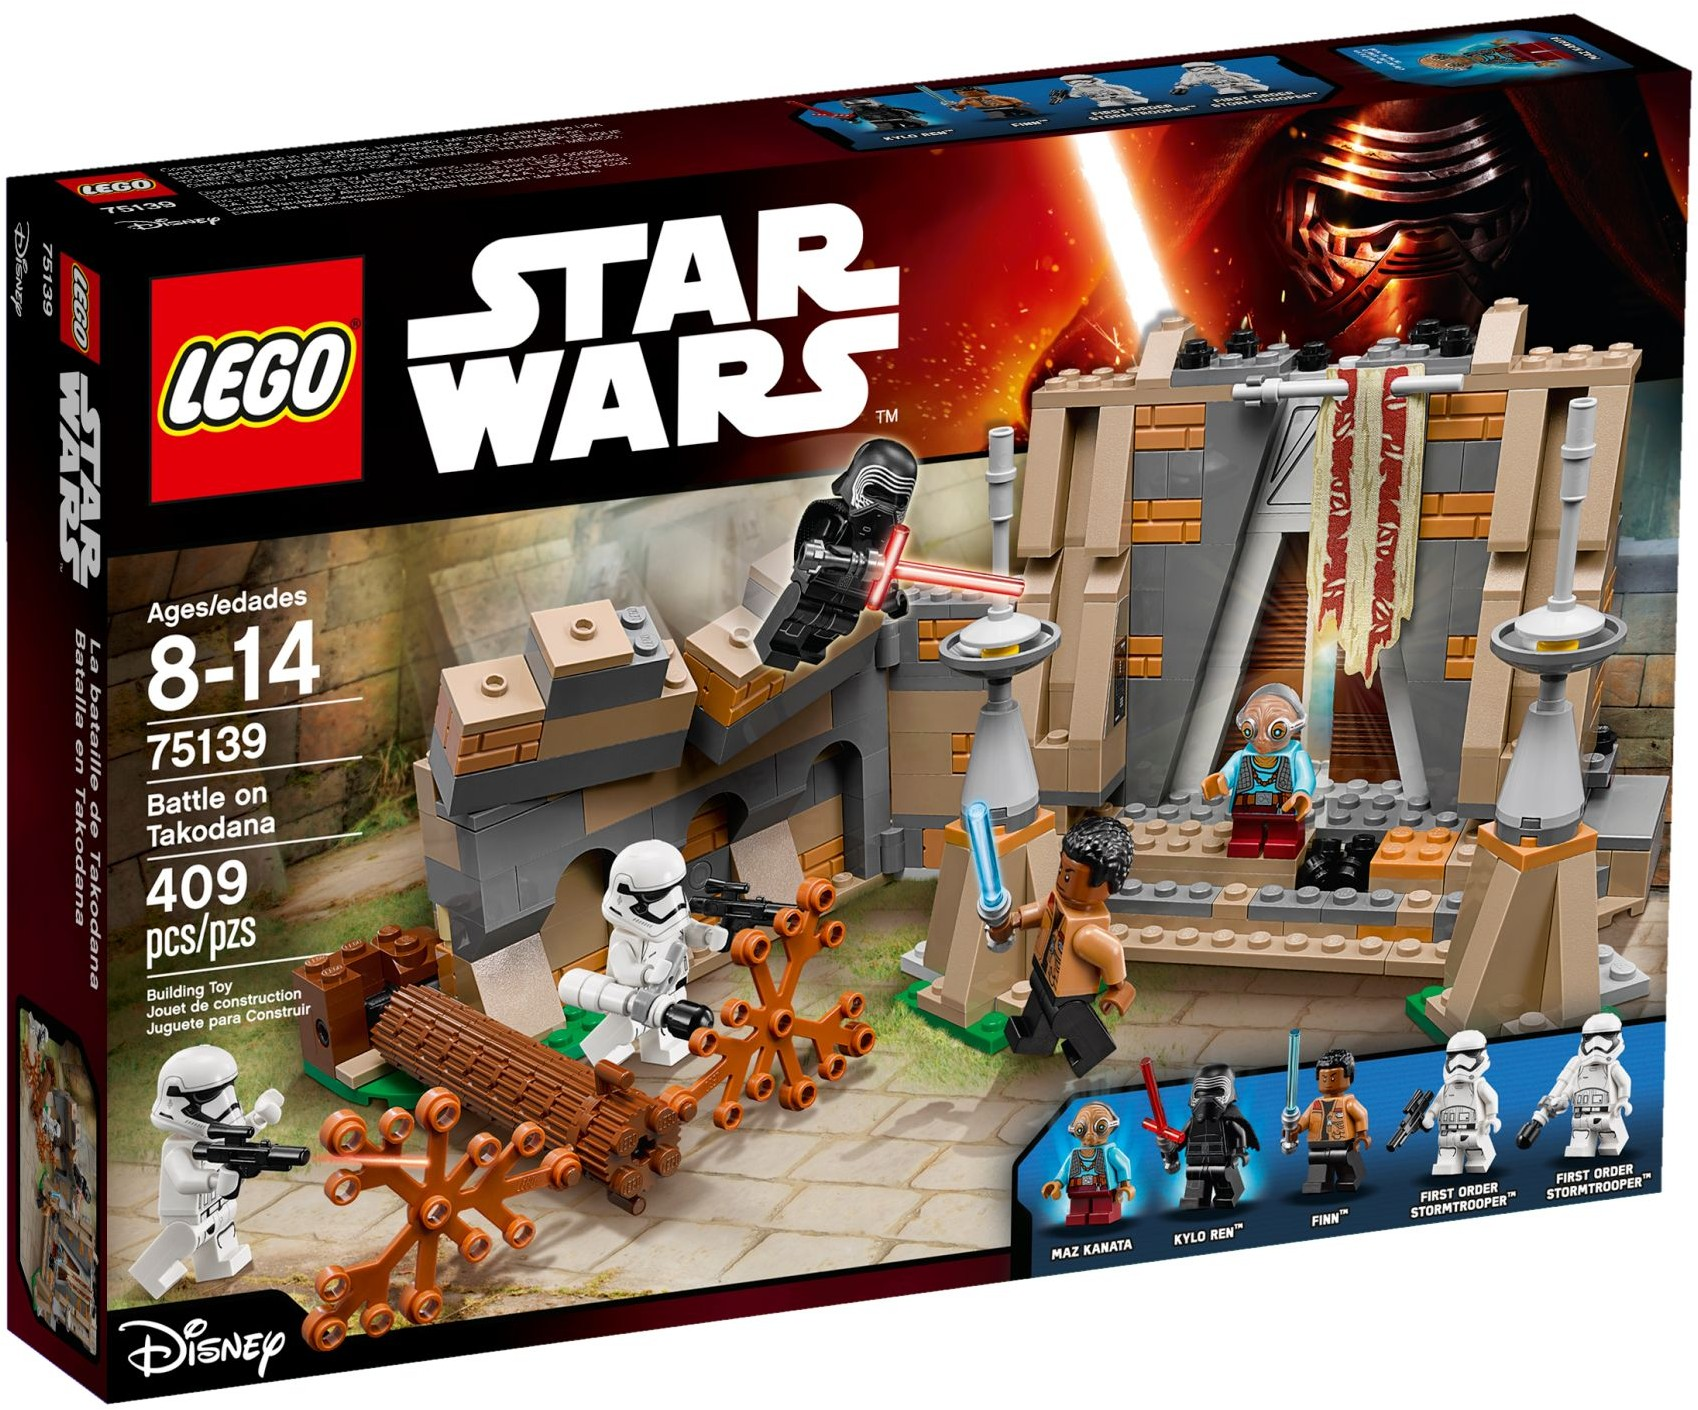 LEGO 75139 - Star Wars - Battle on Takodana